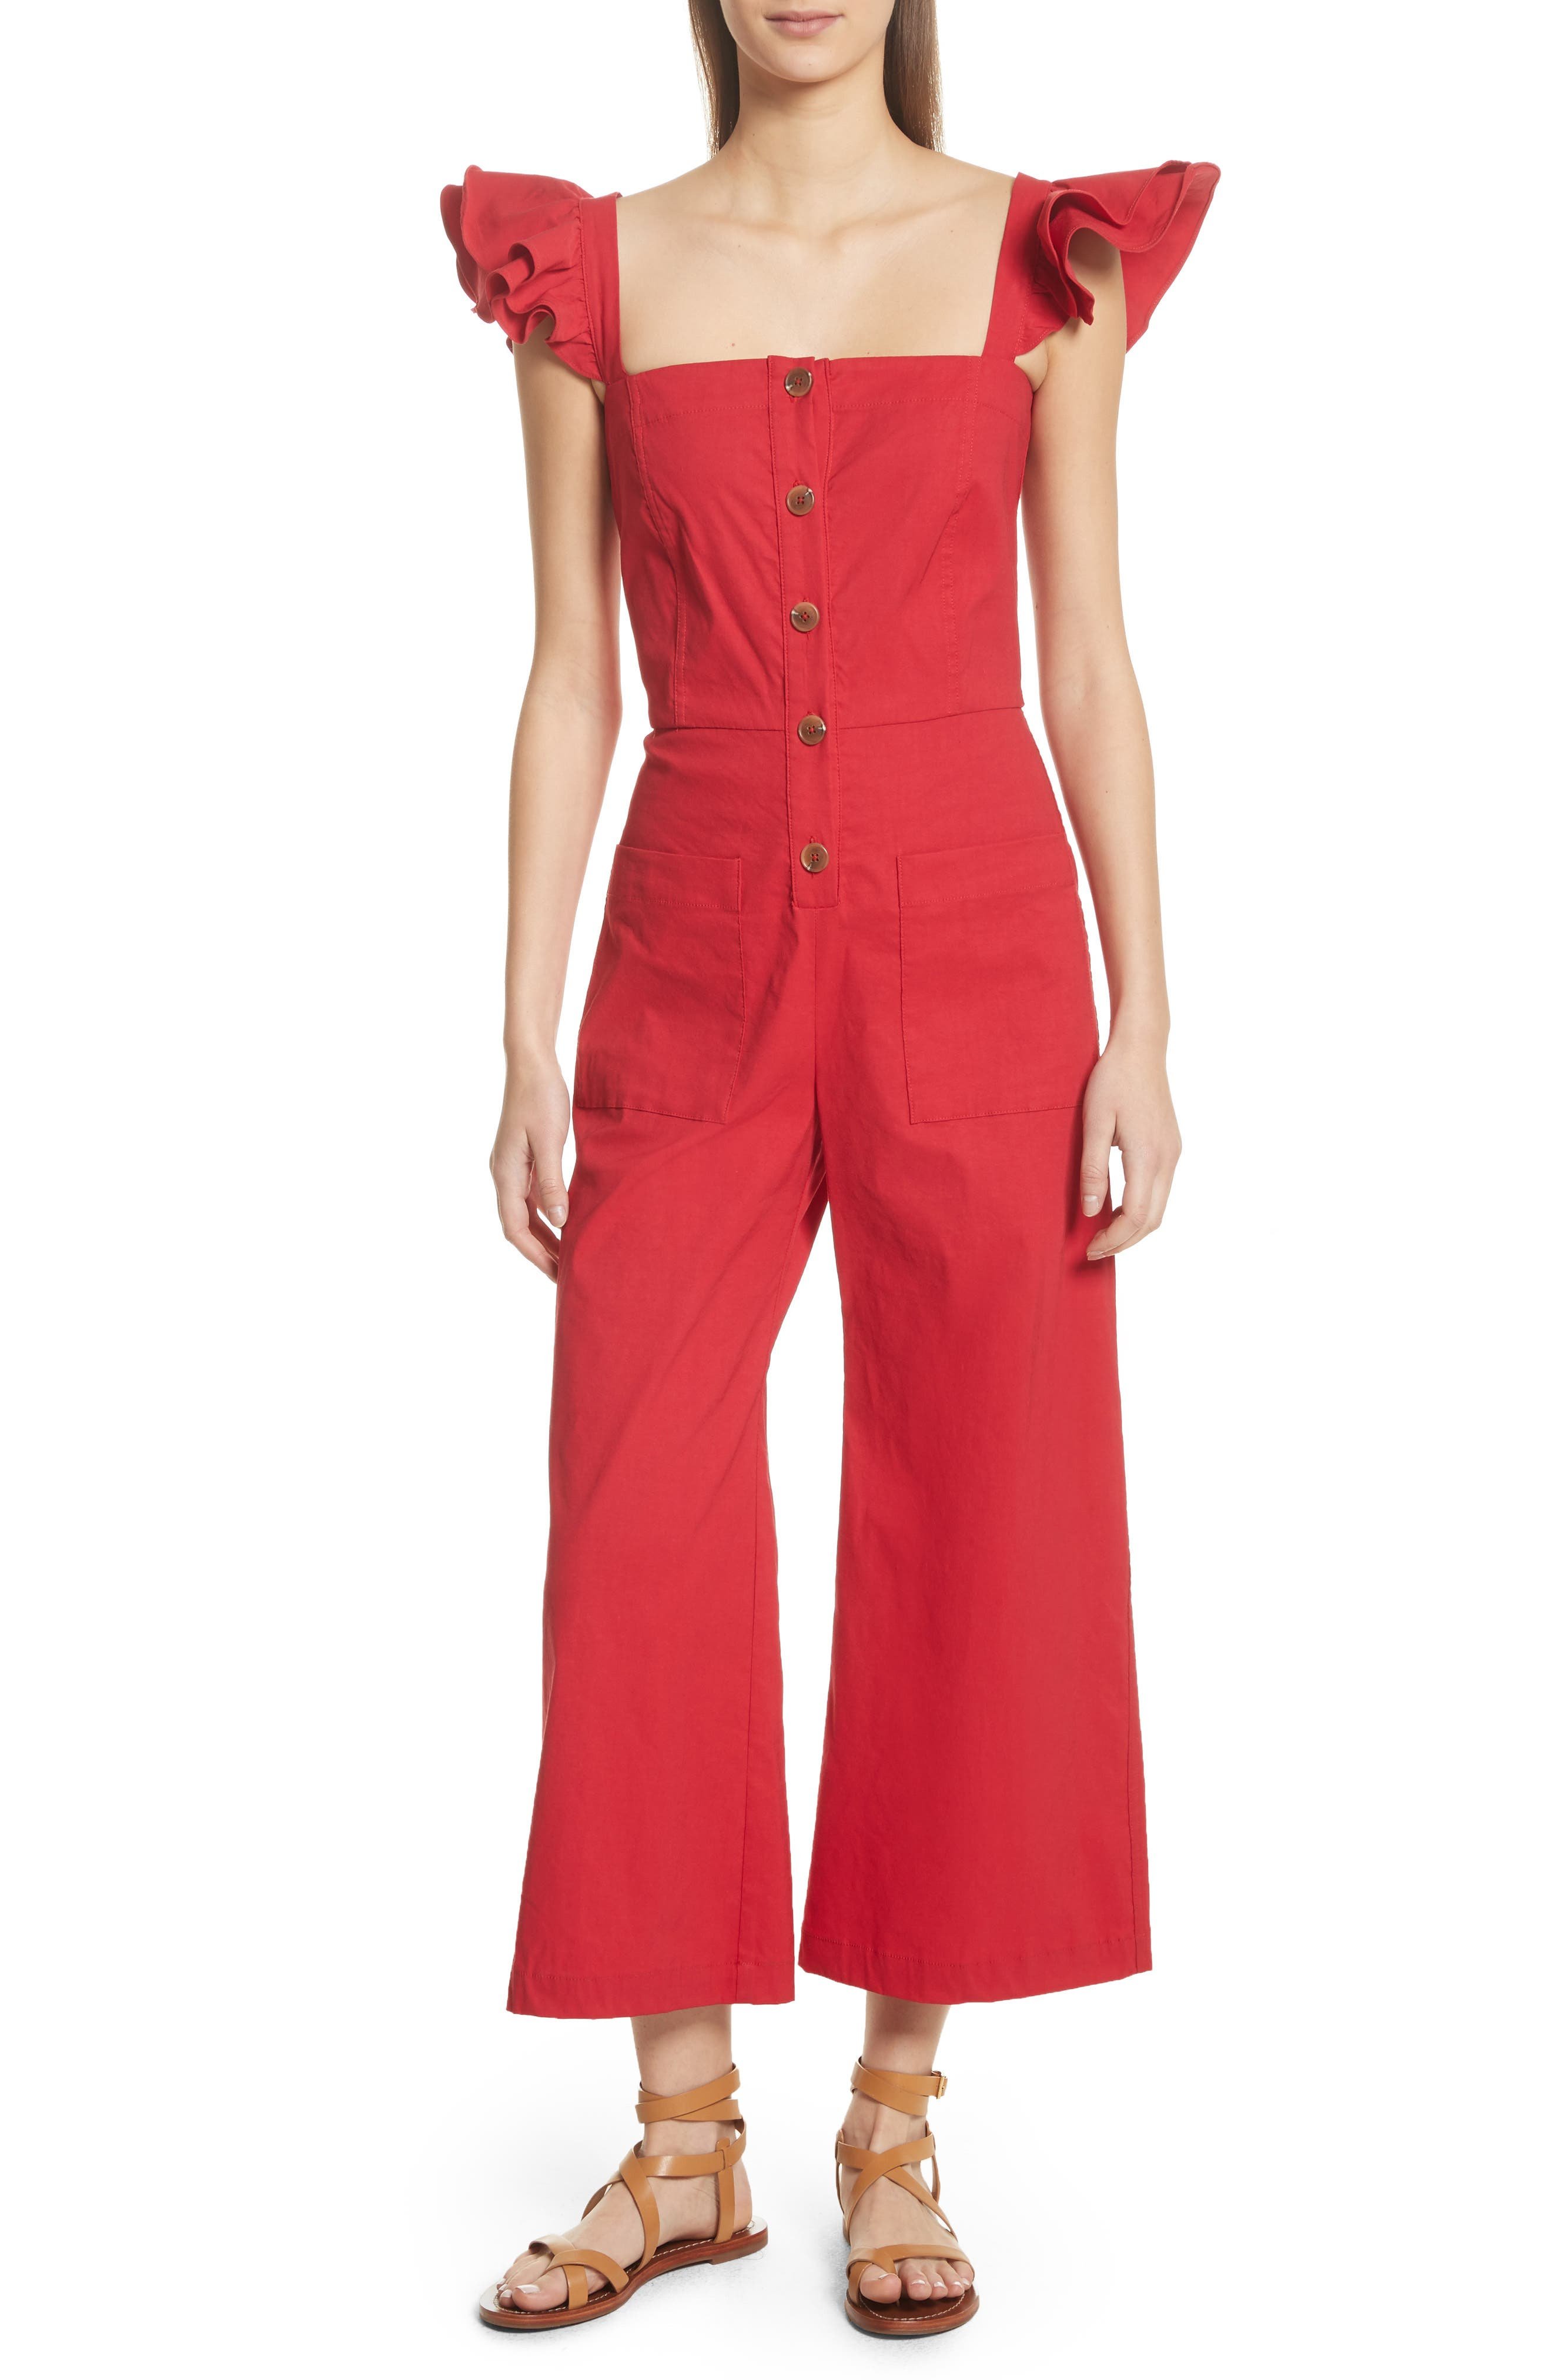 Callie Ruffle Strap Jumpsuit,                             Main thumbnail 1, color,                             Red